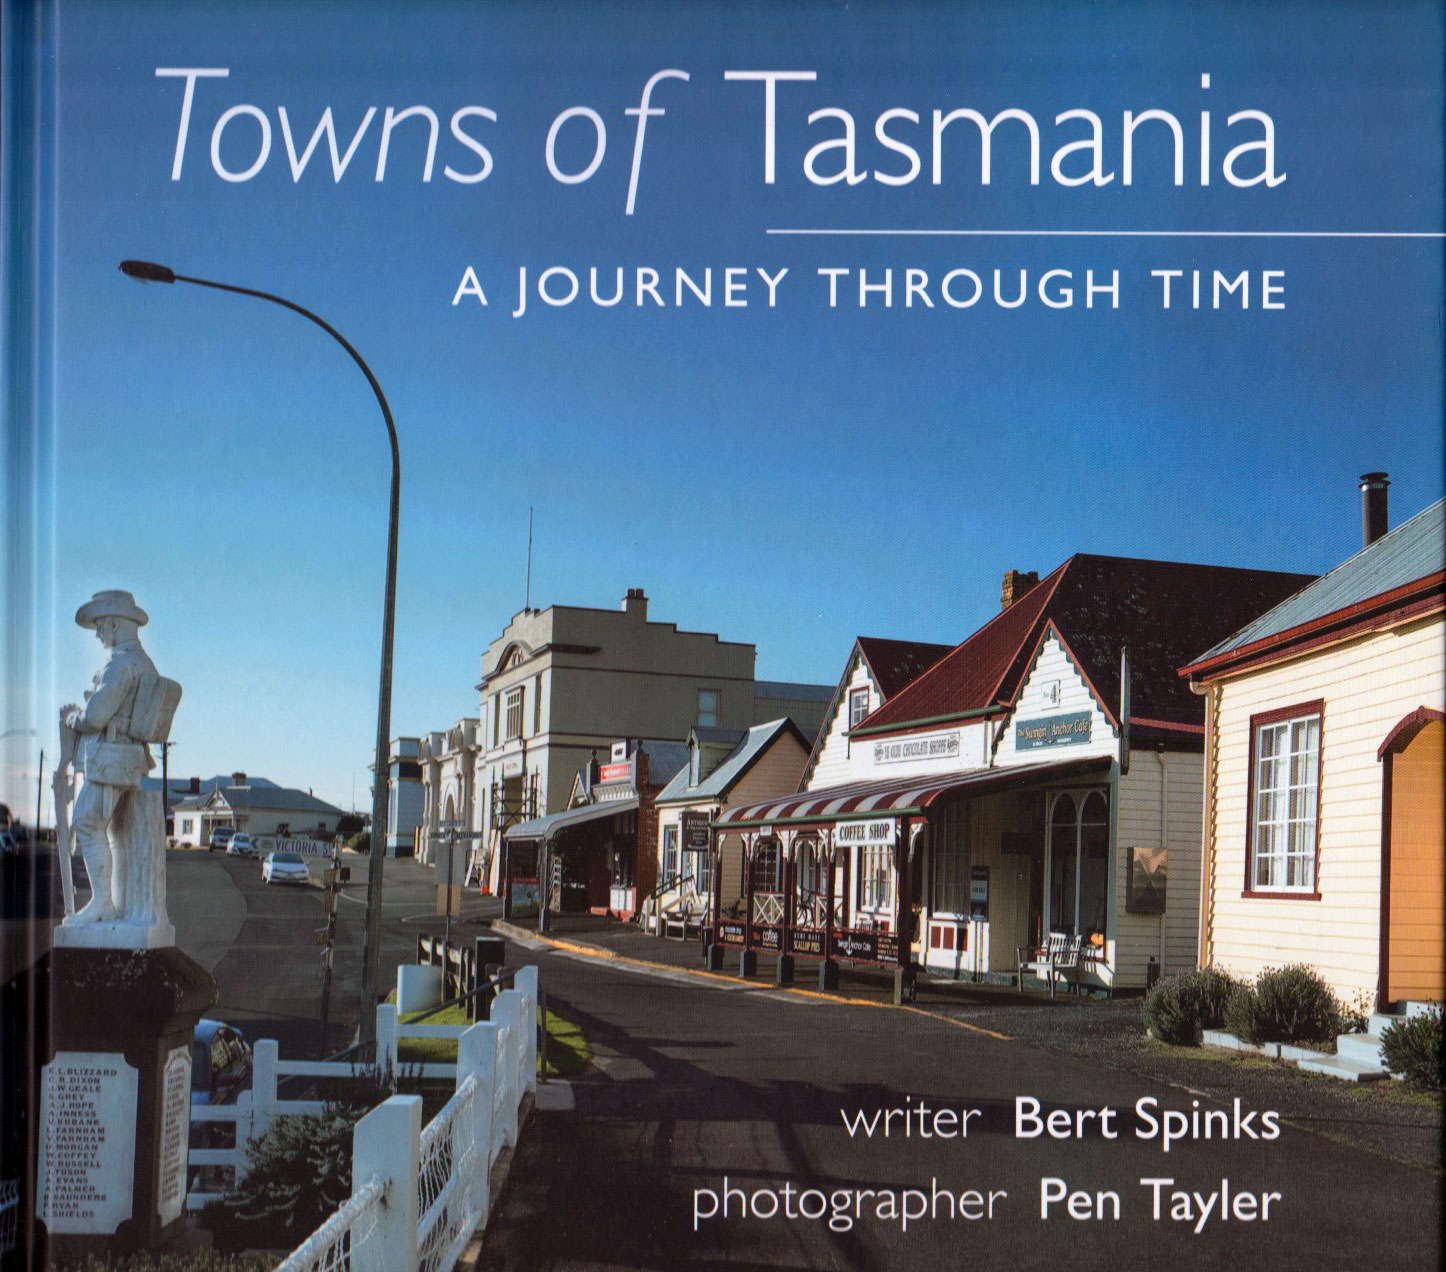 Towns of Tasmania: A Journey Through Time